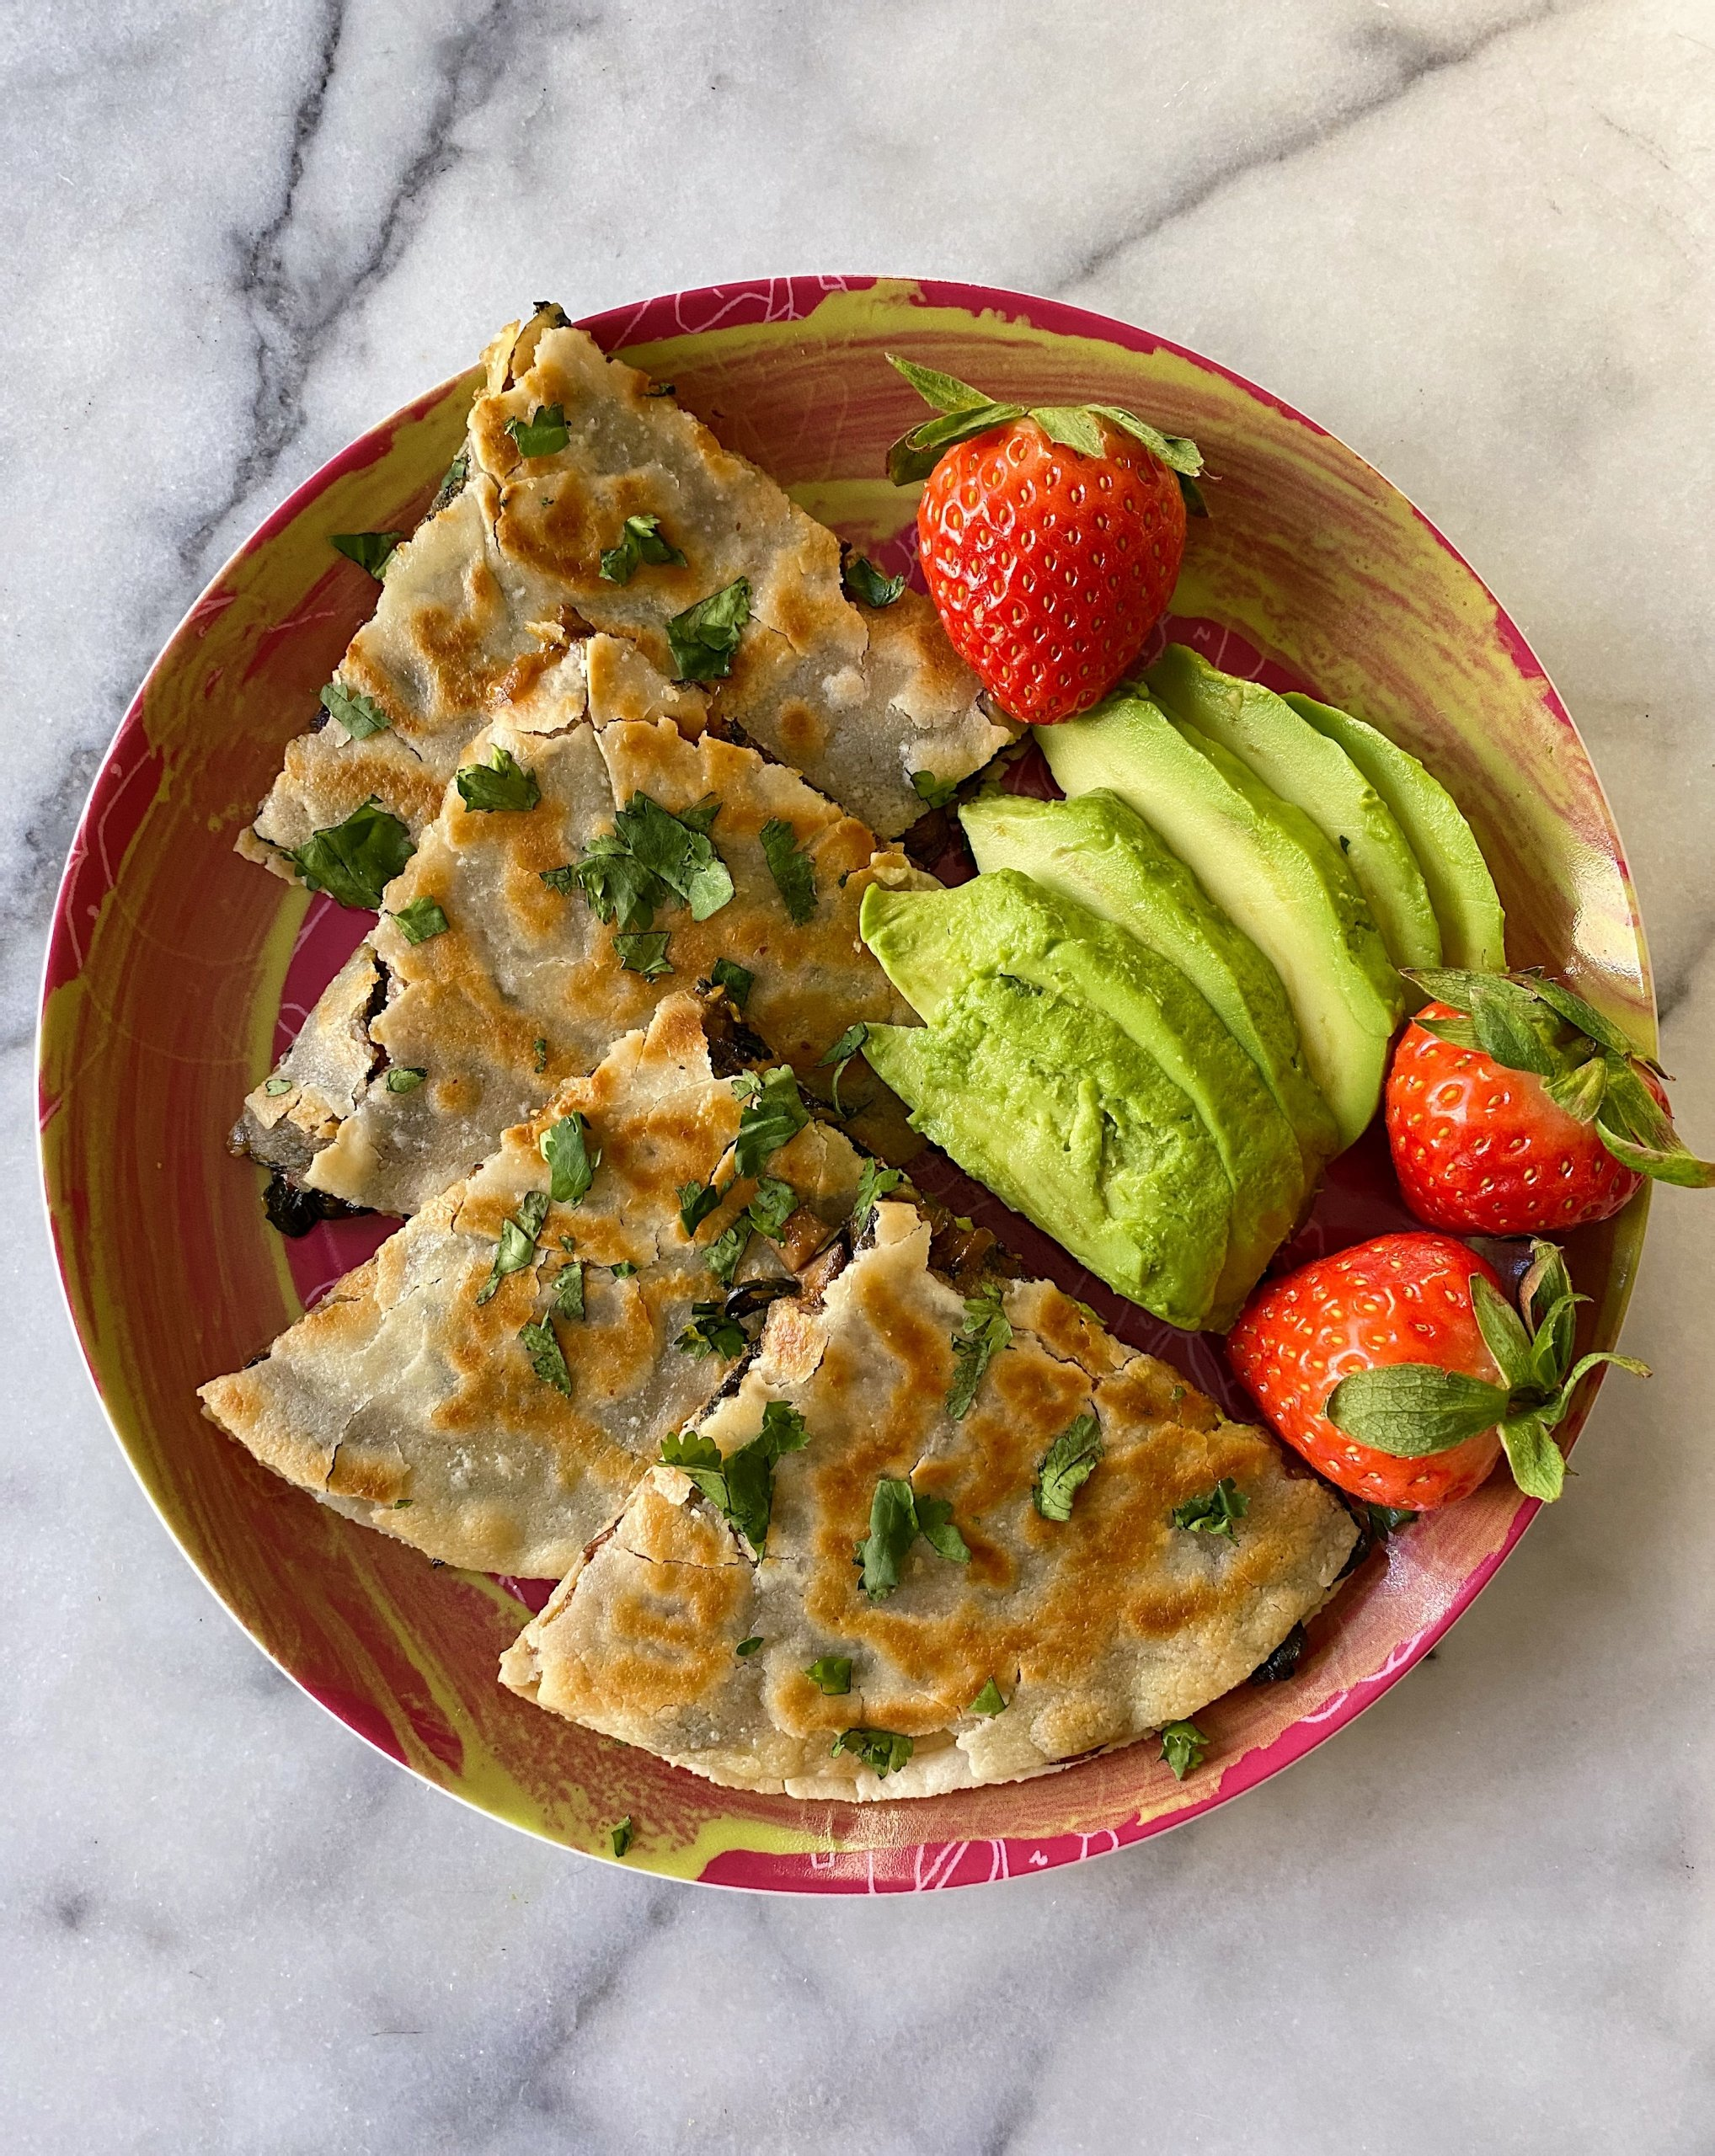 mushroom swiss chard quesadillas gluten free #glutenfreerecipes www.healthygffamily.com